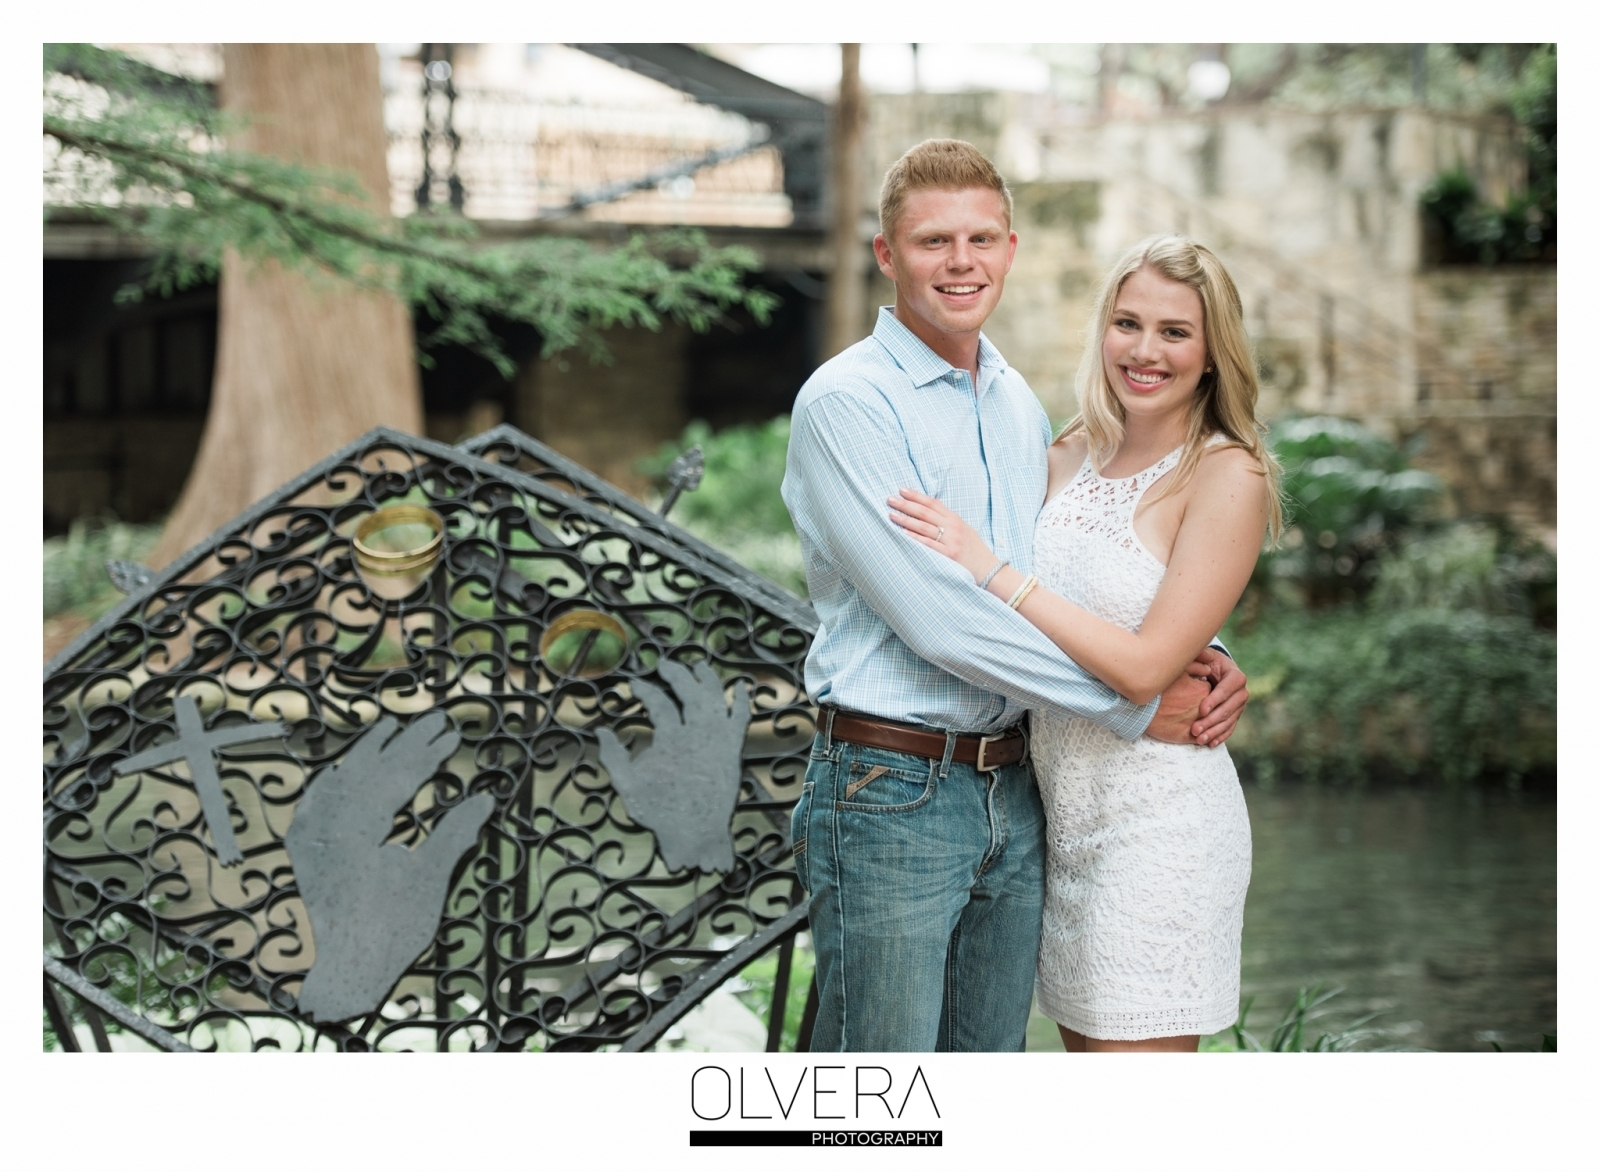 Riverwalk Proposal Marriage Island 2